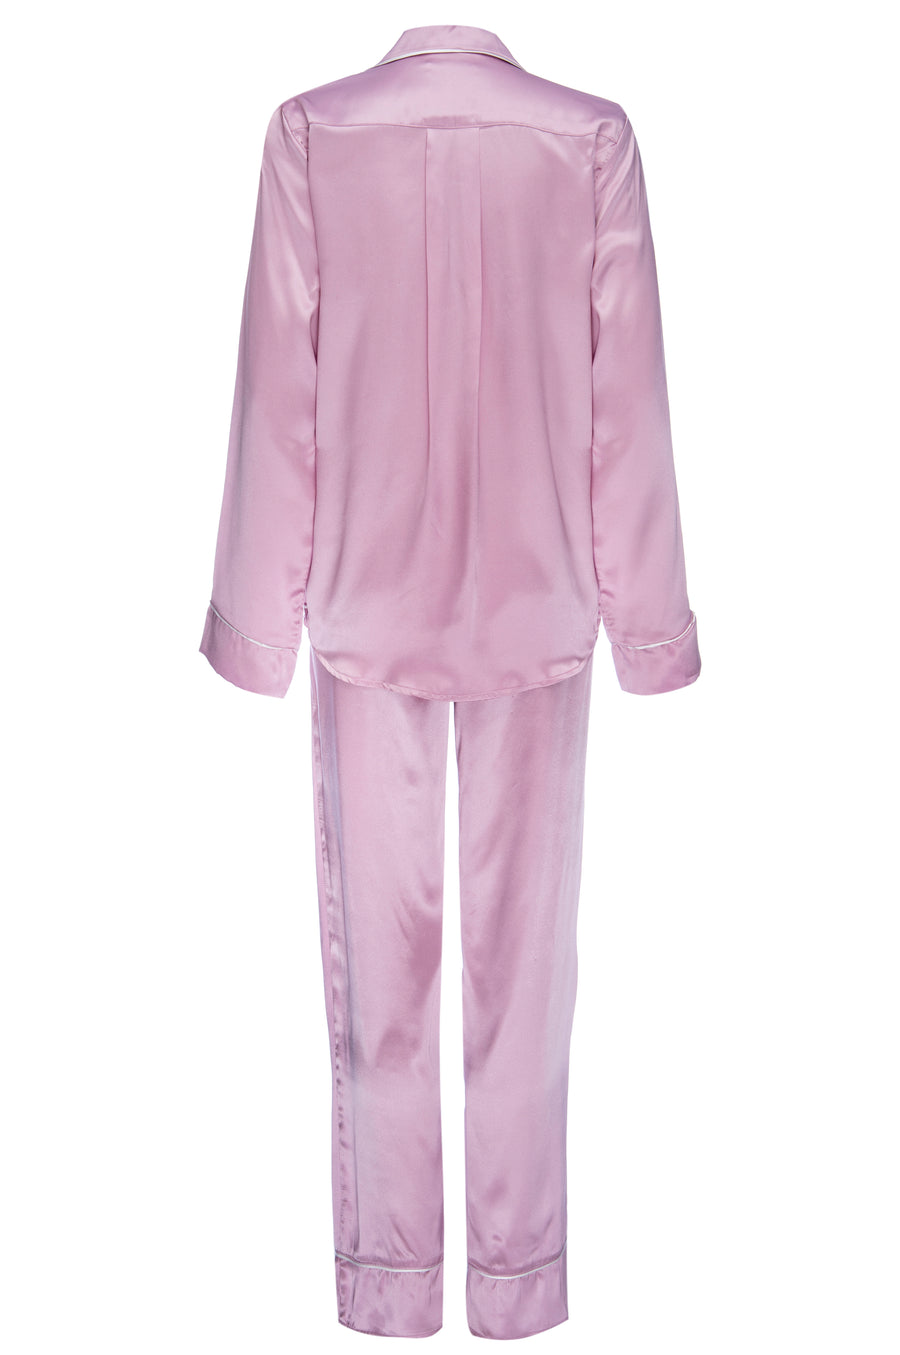 Silk Charmeuse Long Sleeved PJ Top + Pant Set: Orchid Pink